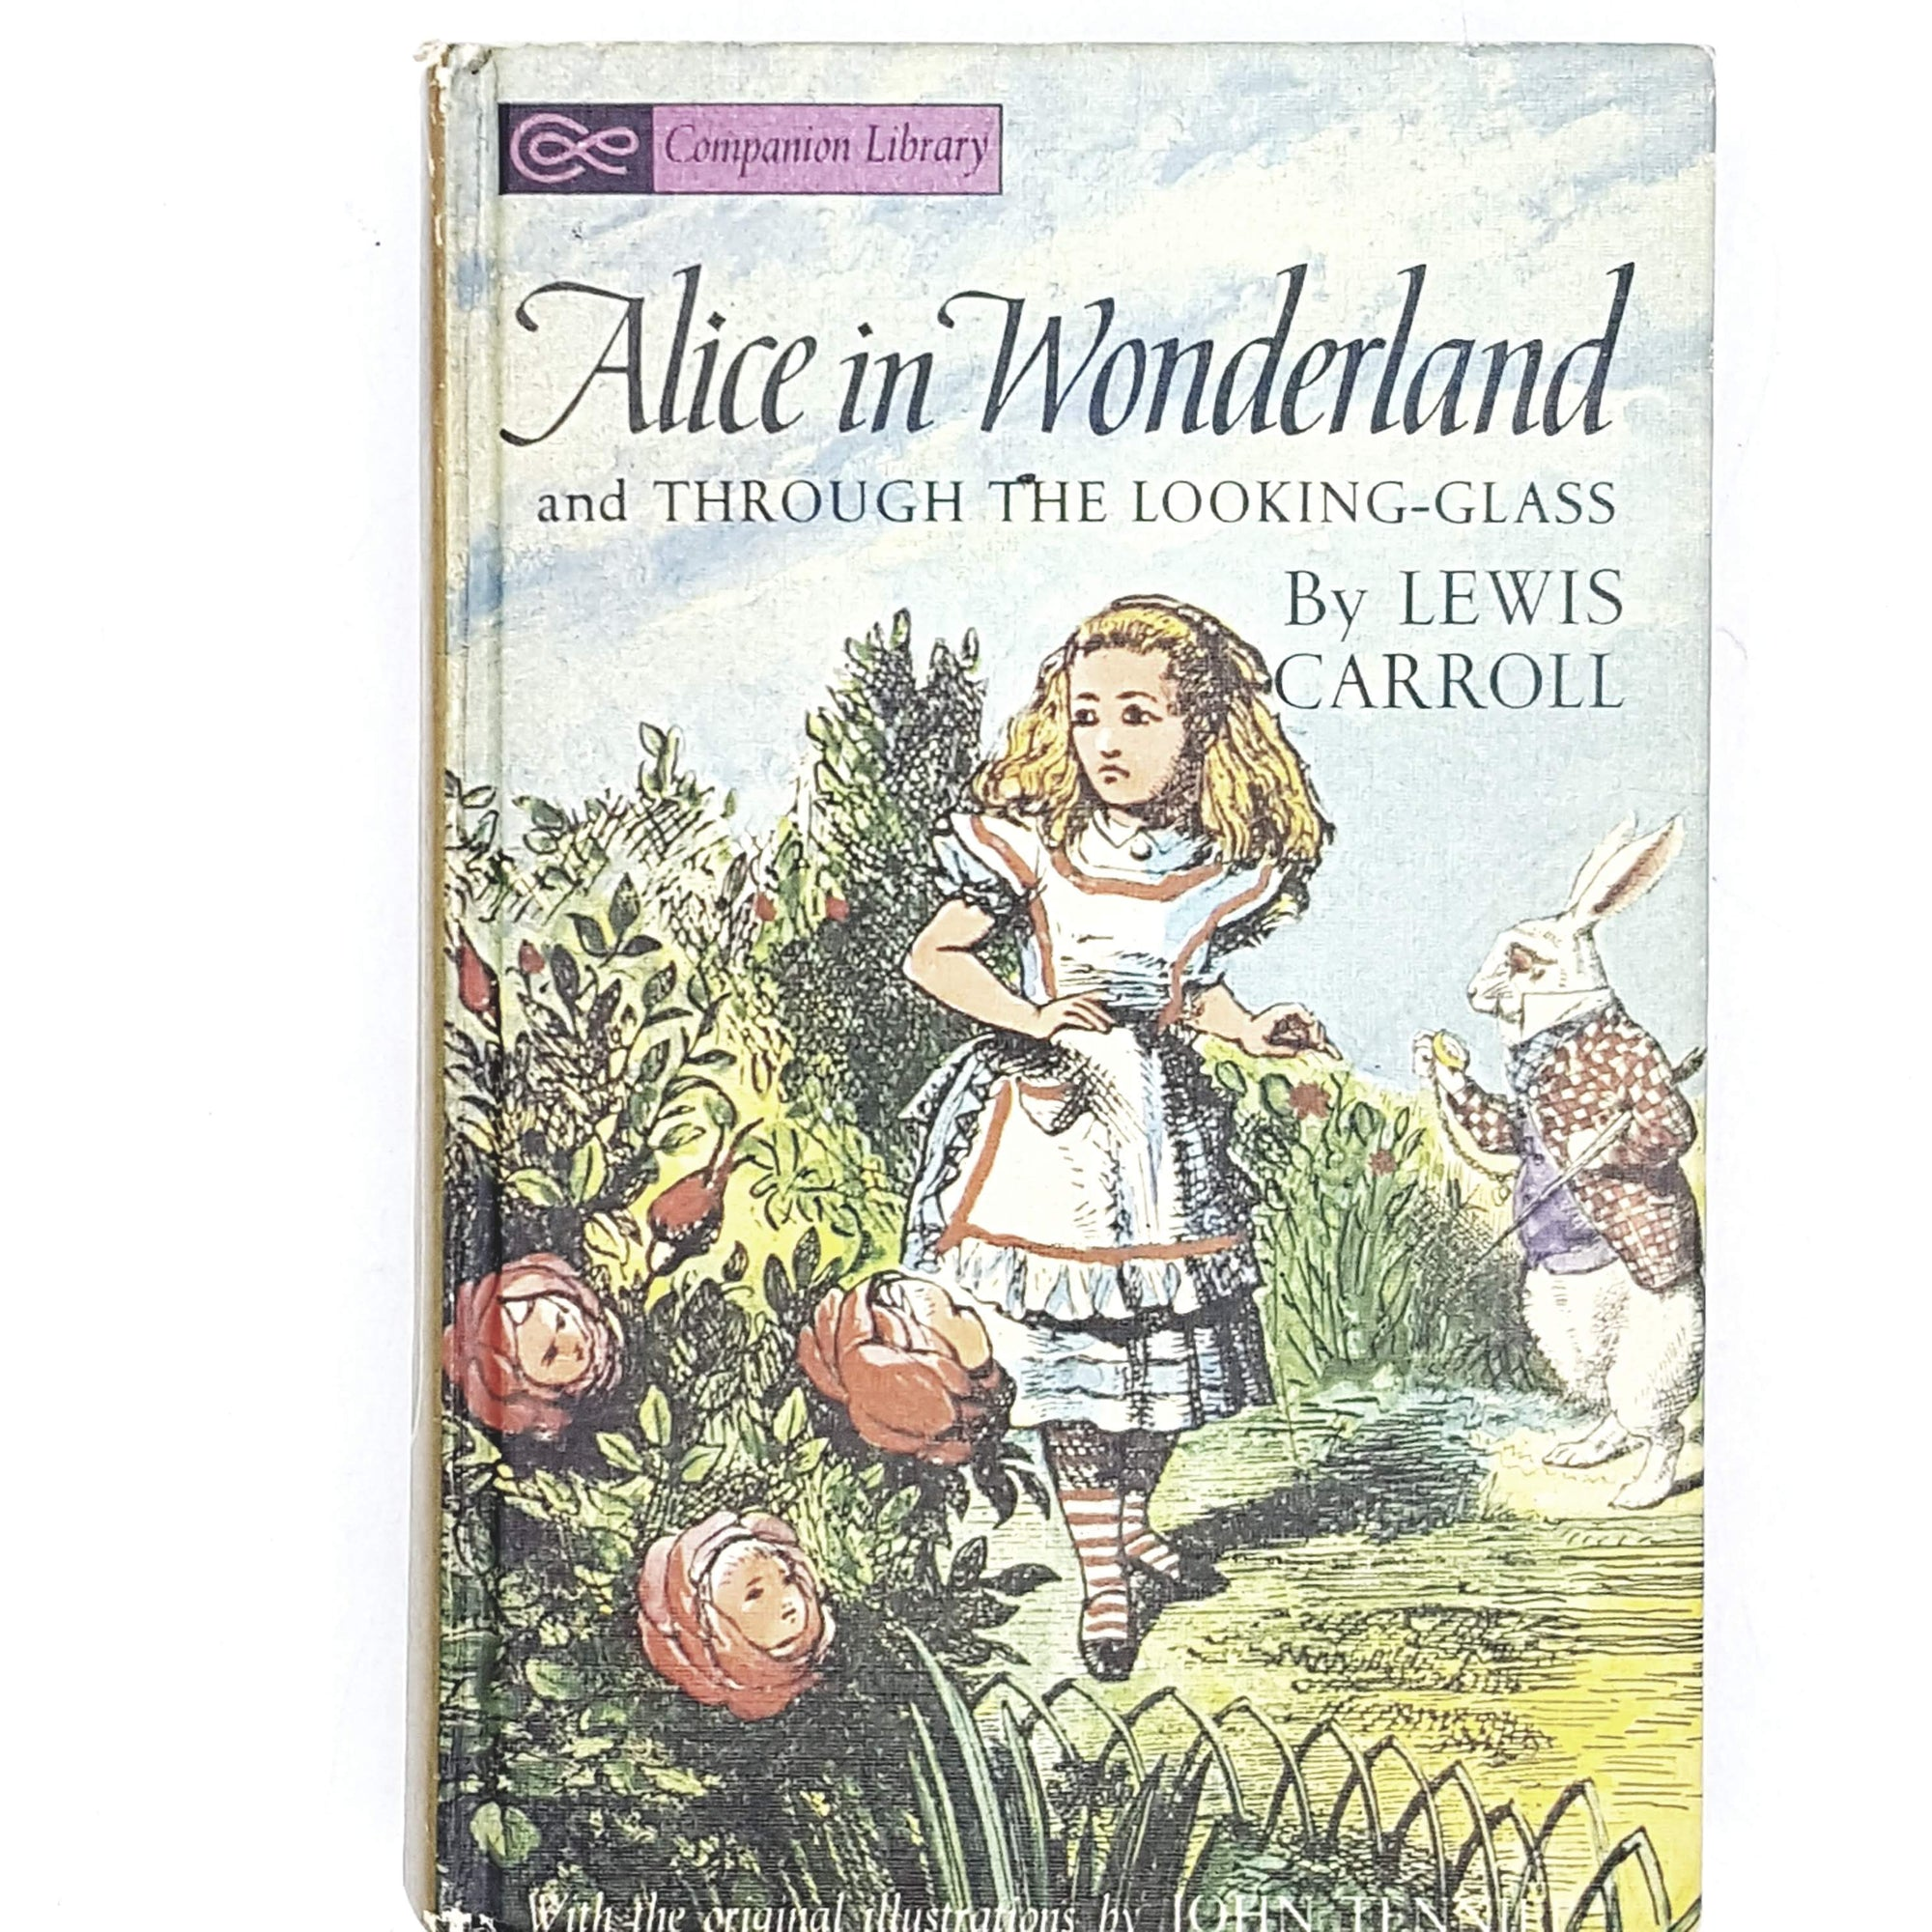 Lewis Carroll's Alice in Wonderland | Five Little Peppers and How They Grow by Margaret Sydney 1963